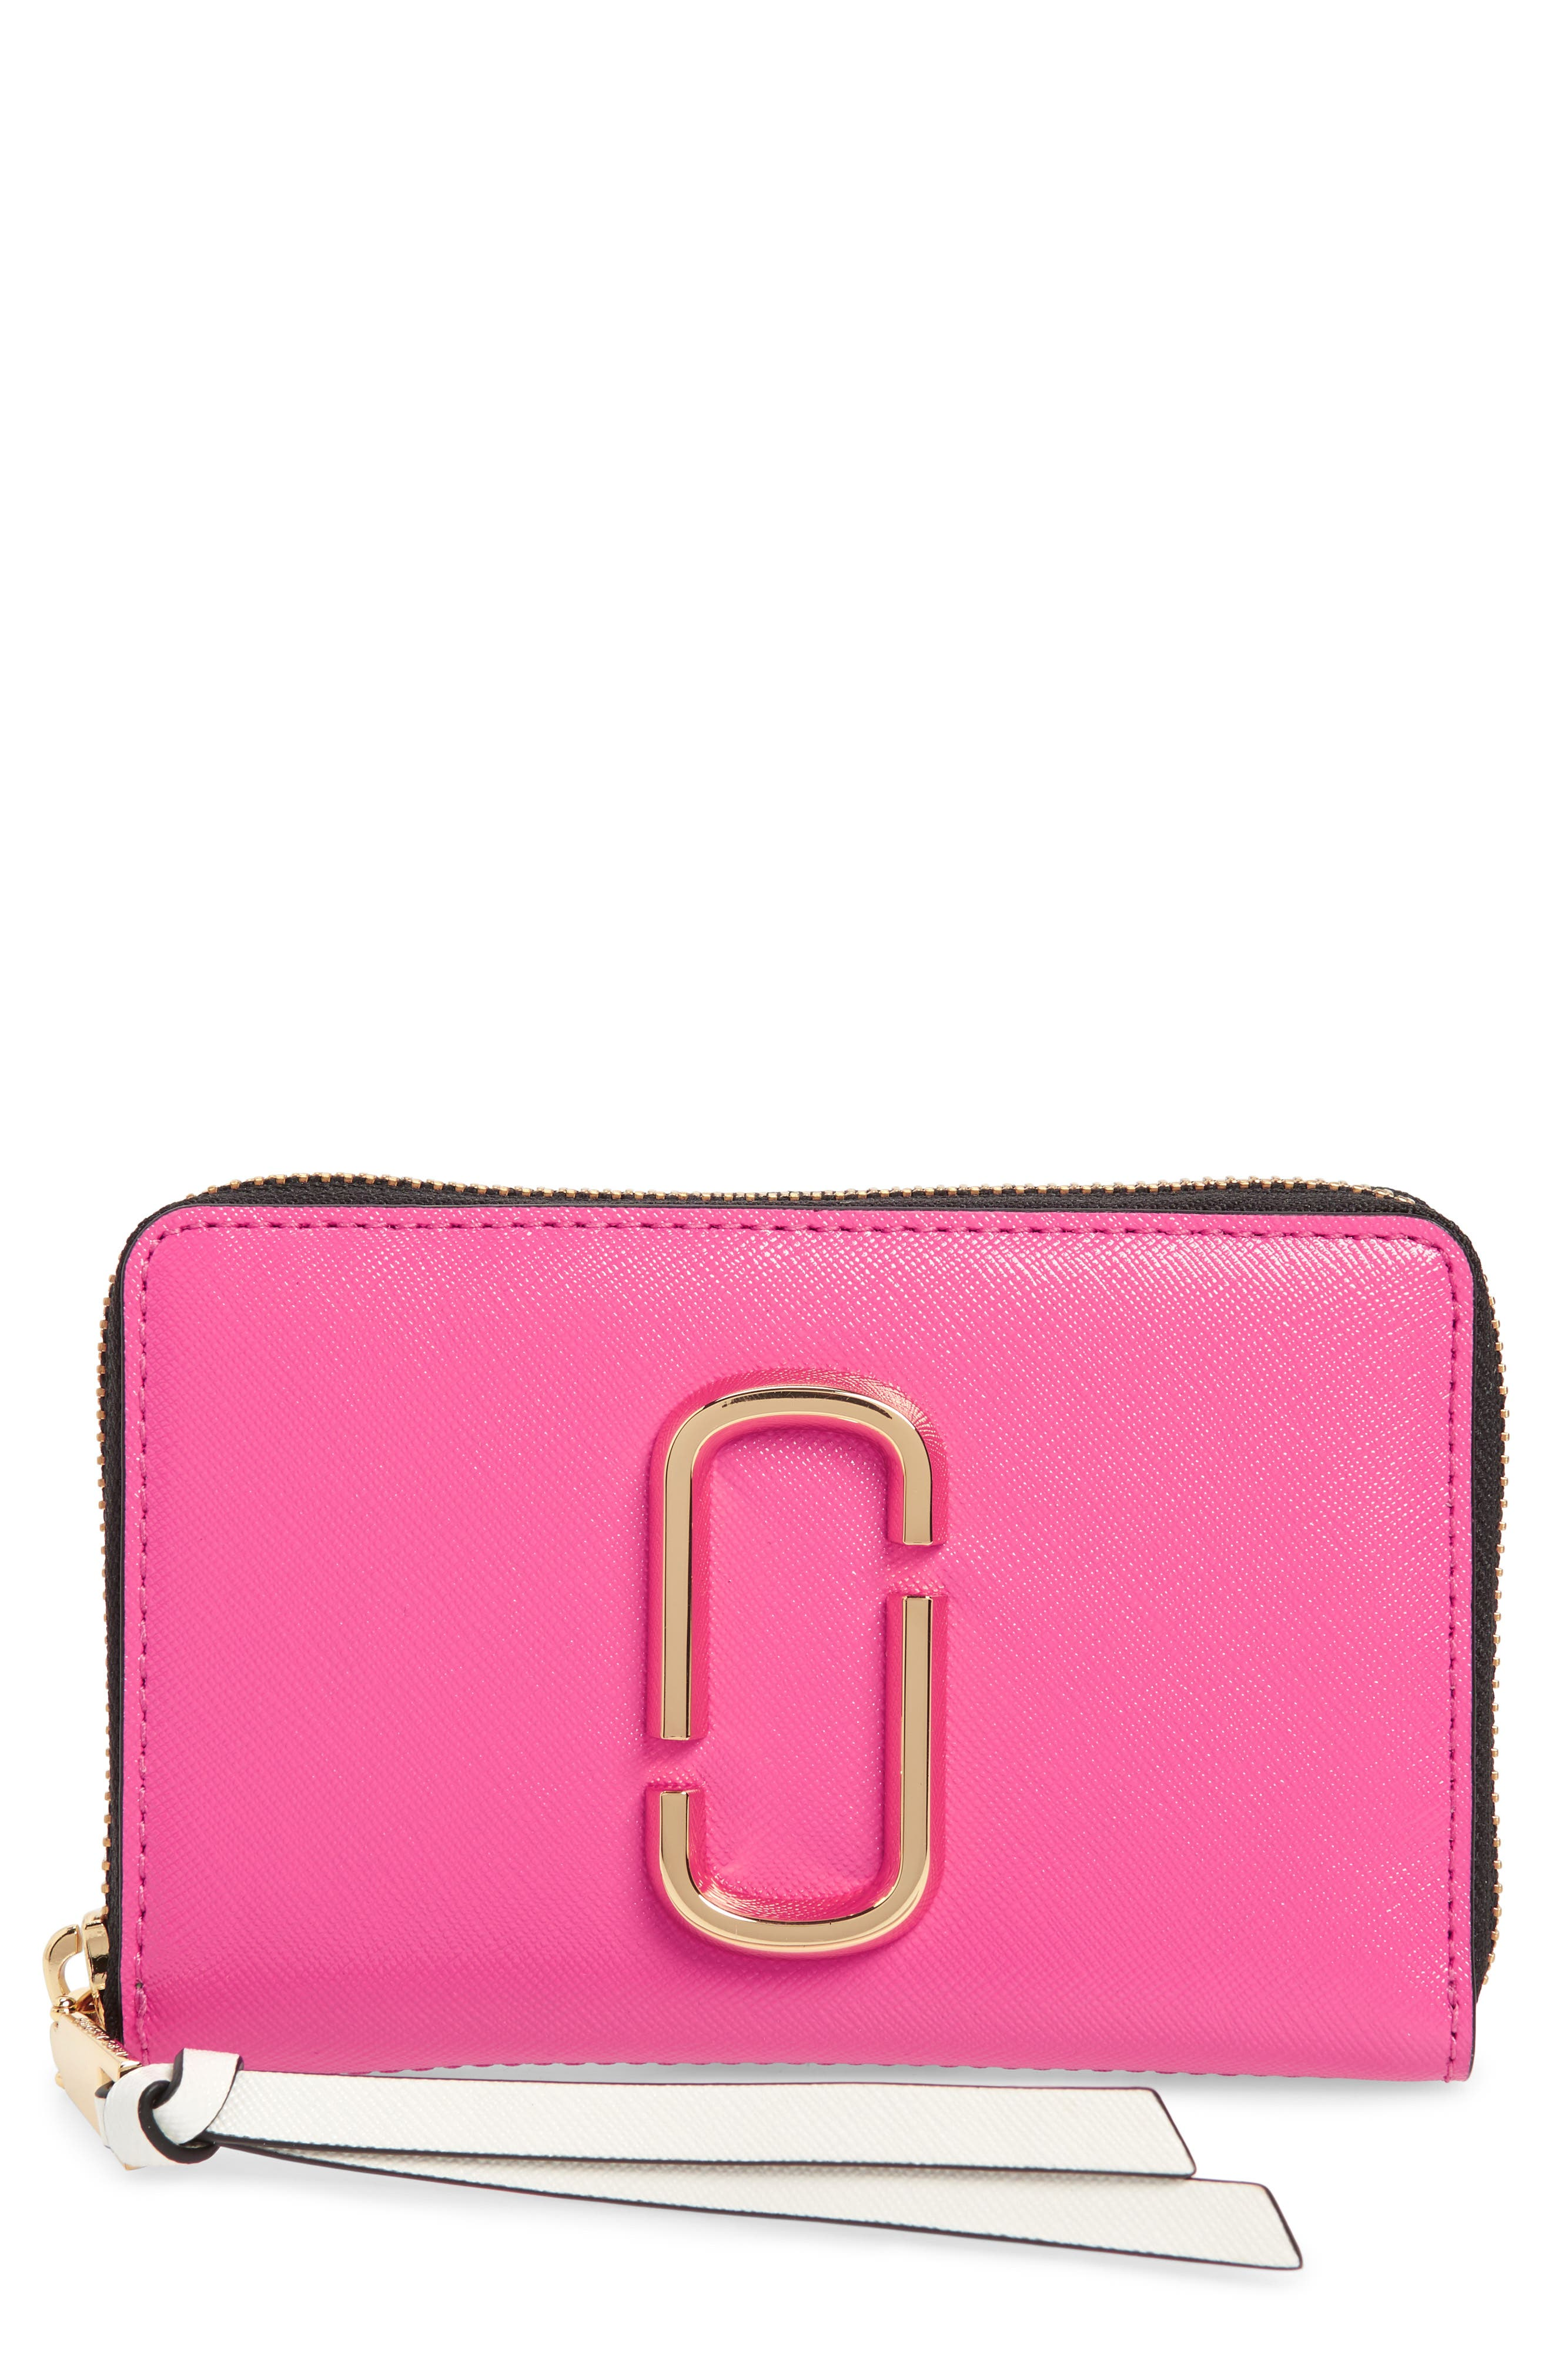 Small Snapshot Leather Zip-Around Wallet,                             Main thumbnail 1, color,                             Vivid Pink Multi